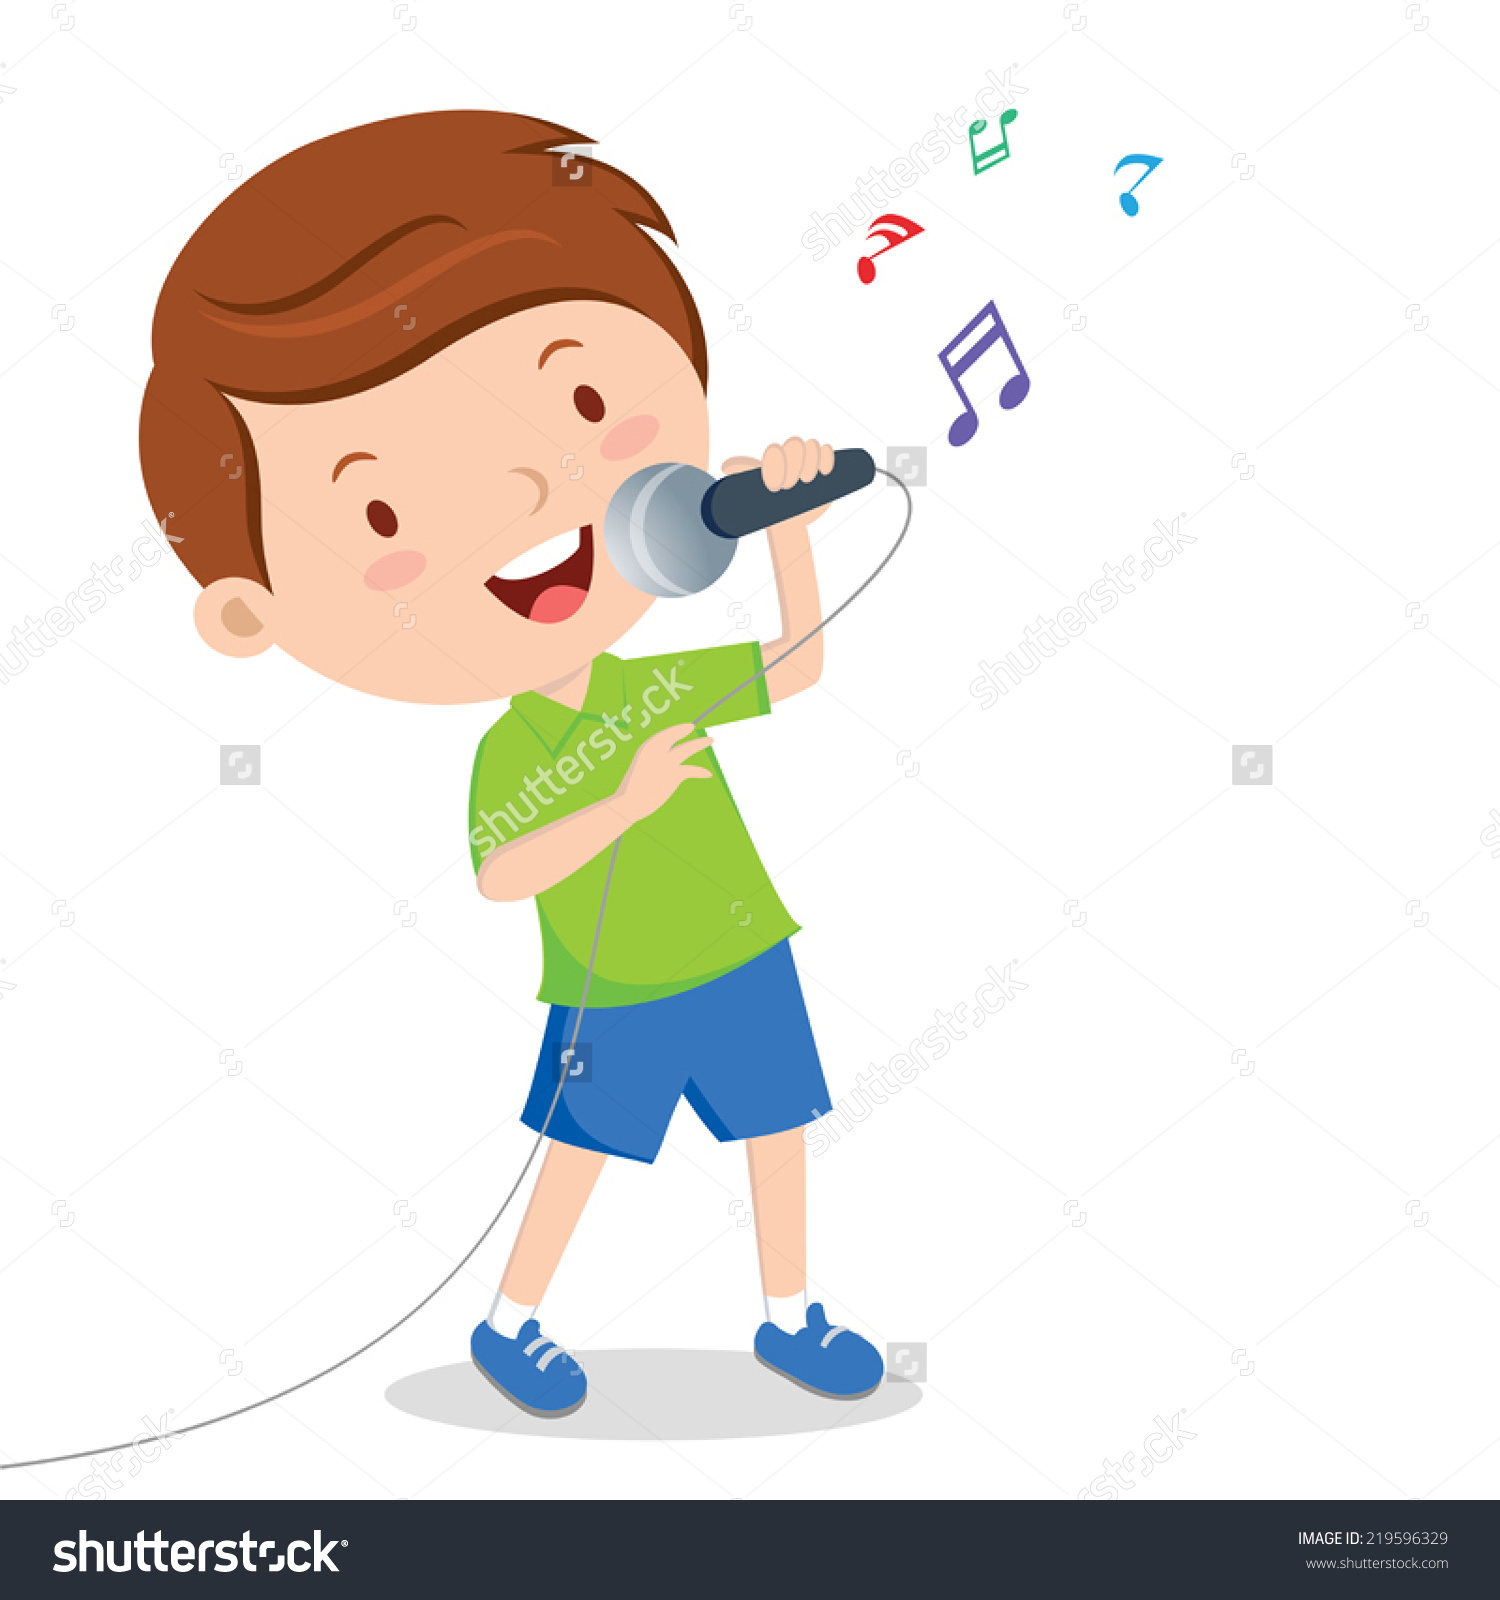 A boy singing clipart.